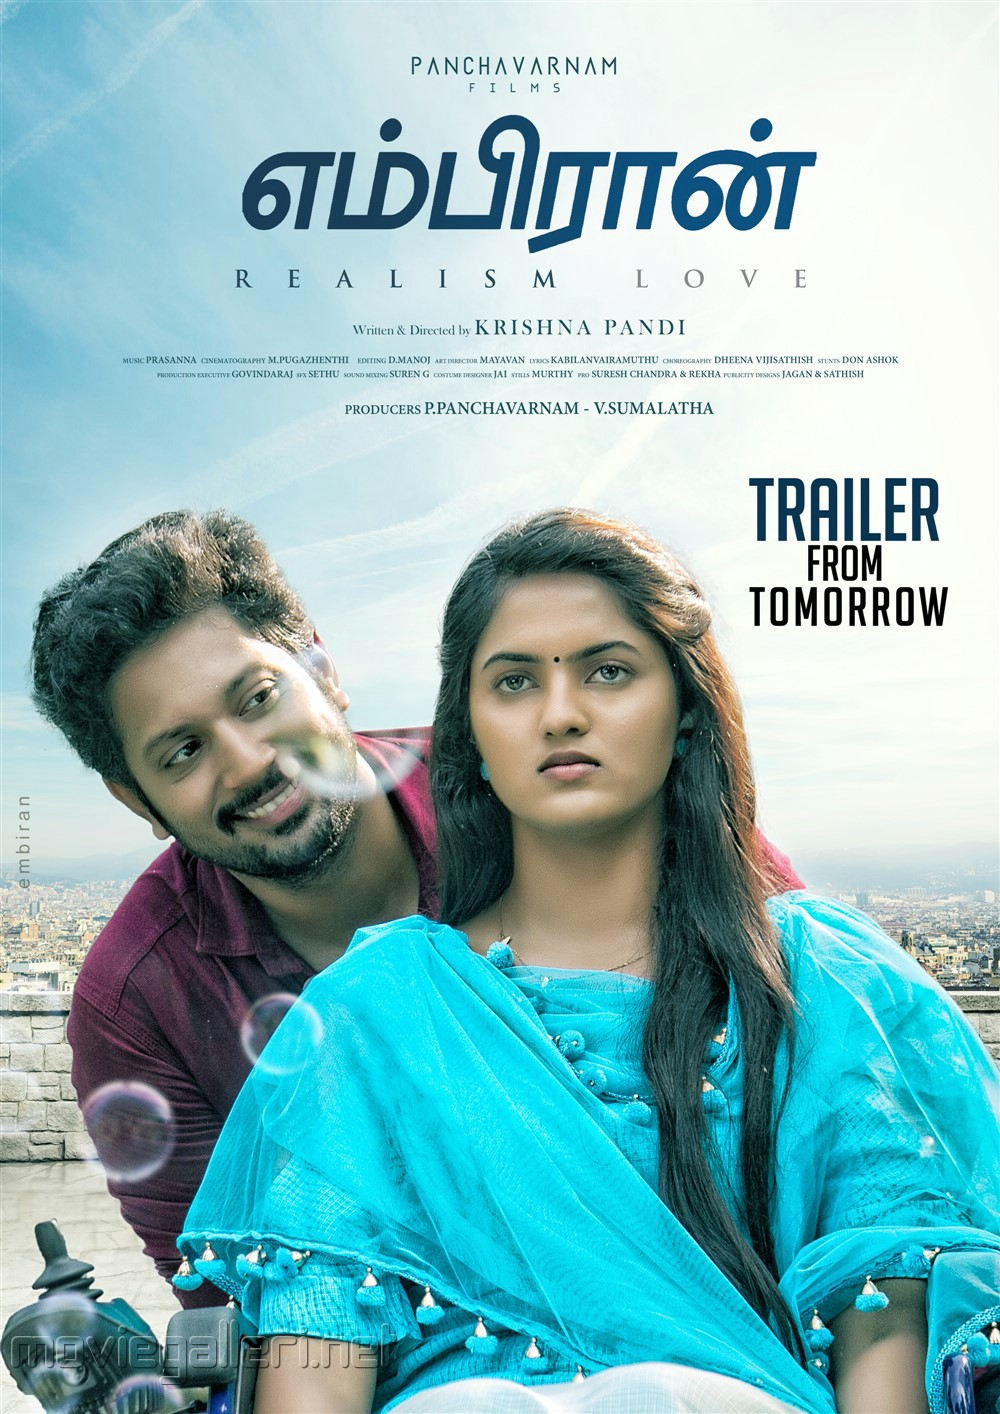 Rejith Menon Radhika Preeti Embiran Movie Scintillating Trailer Tomorrow